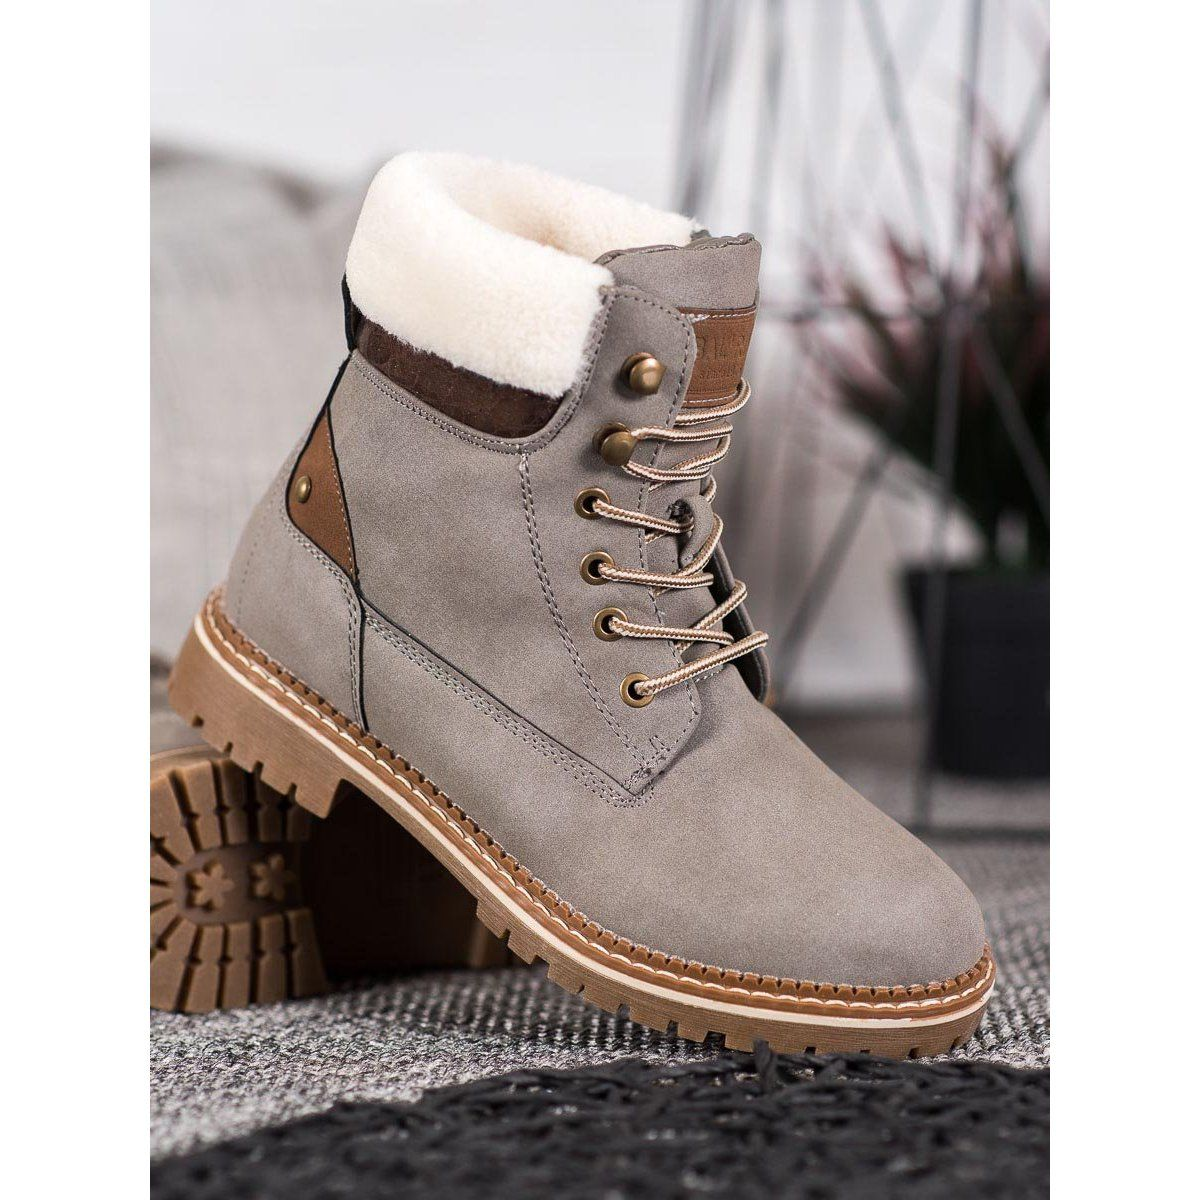 Sds Tekstylne Trapery Szare Military Pants Timberland Boots Boots